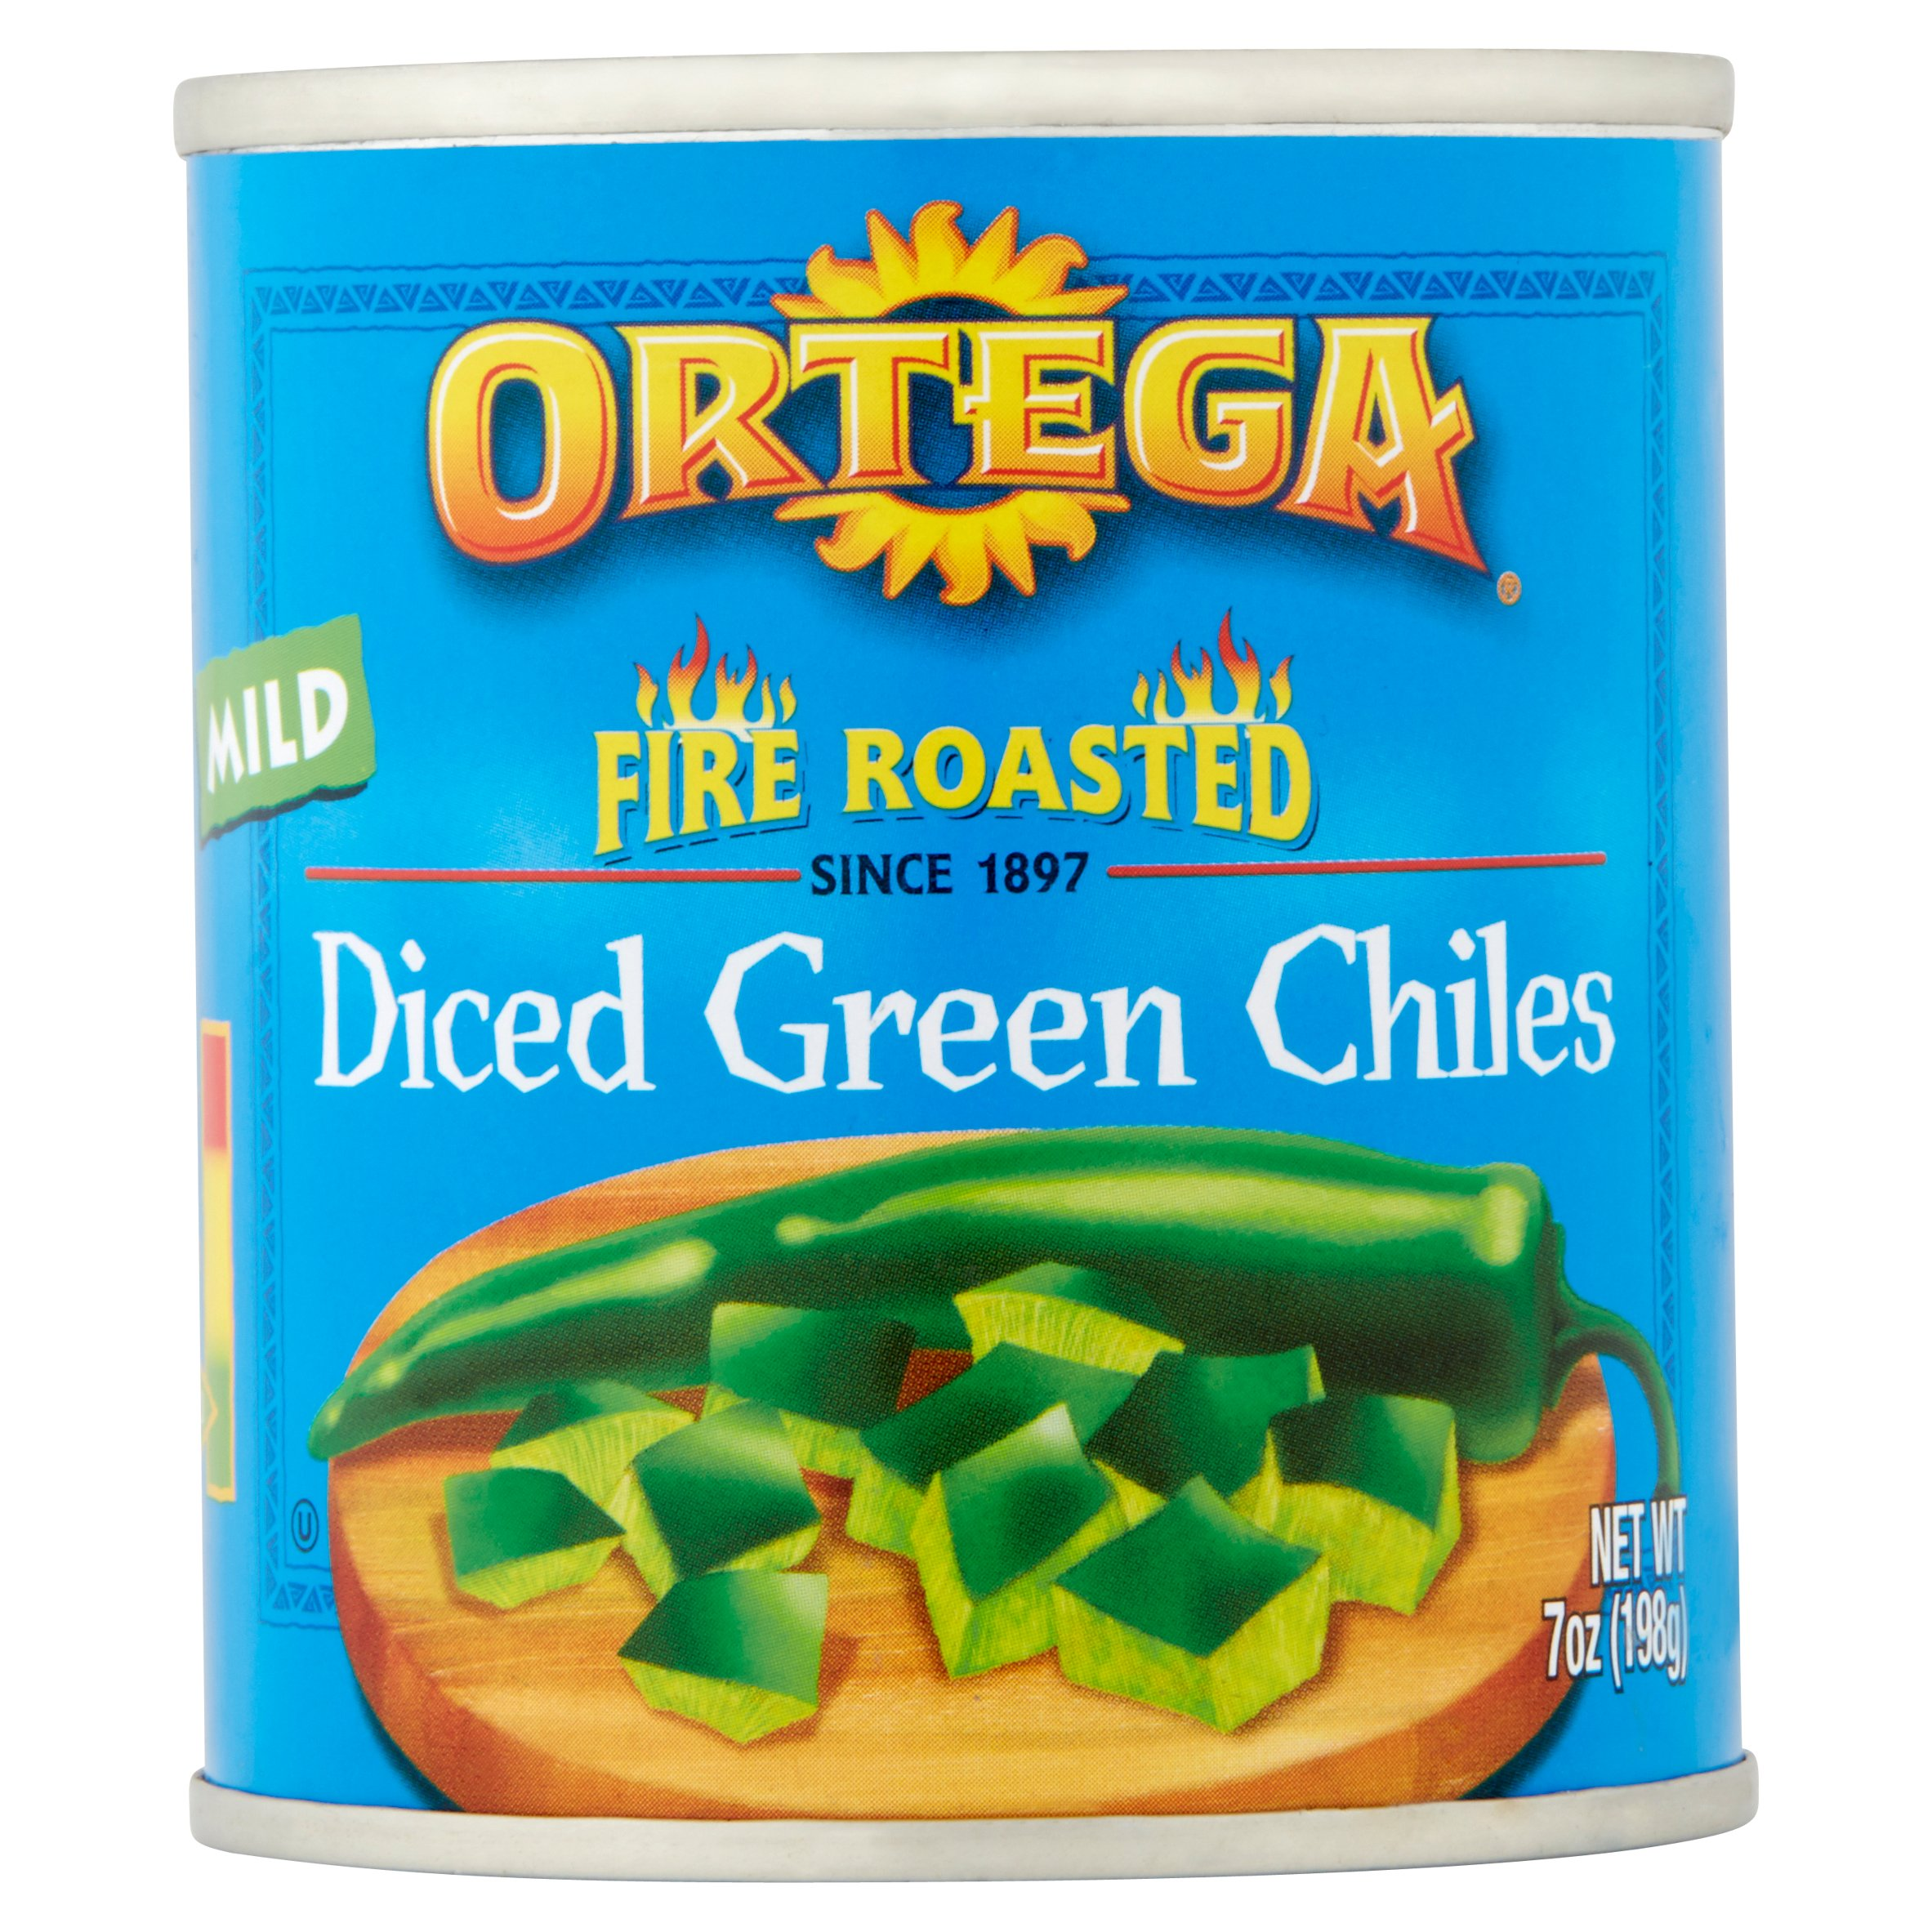 Ortega Fire Roasted Diced Green Chiles Mild, 7.0 OZ